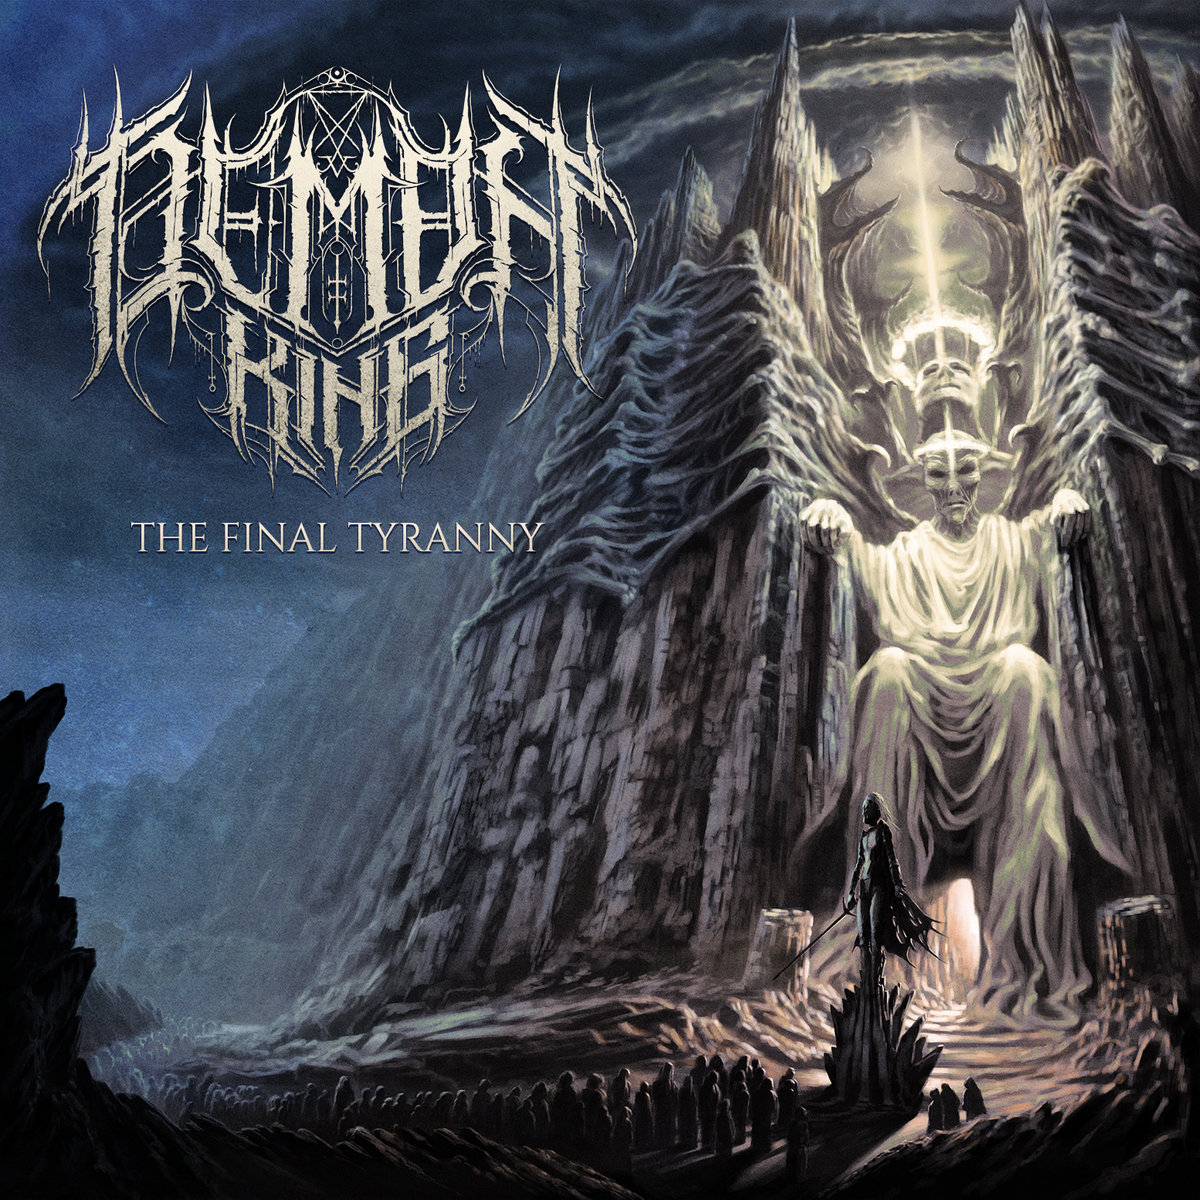 The Final Tyranny Demon King Album Cover Artwork